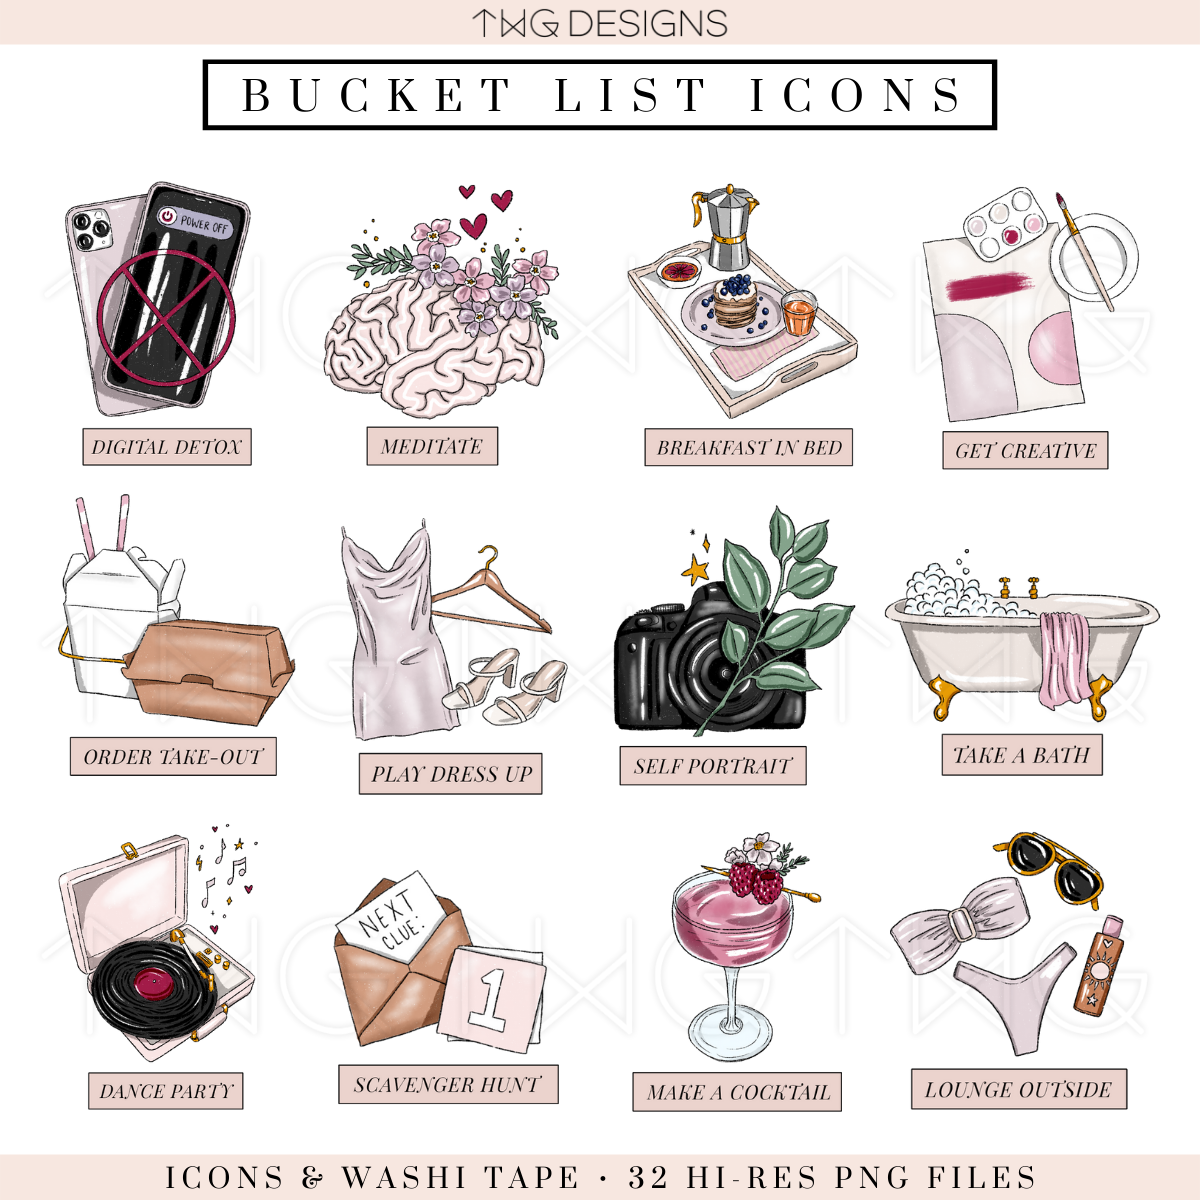 Staycation - Bucket List Icons